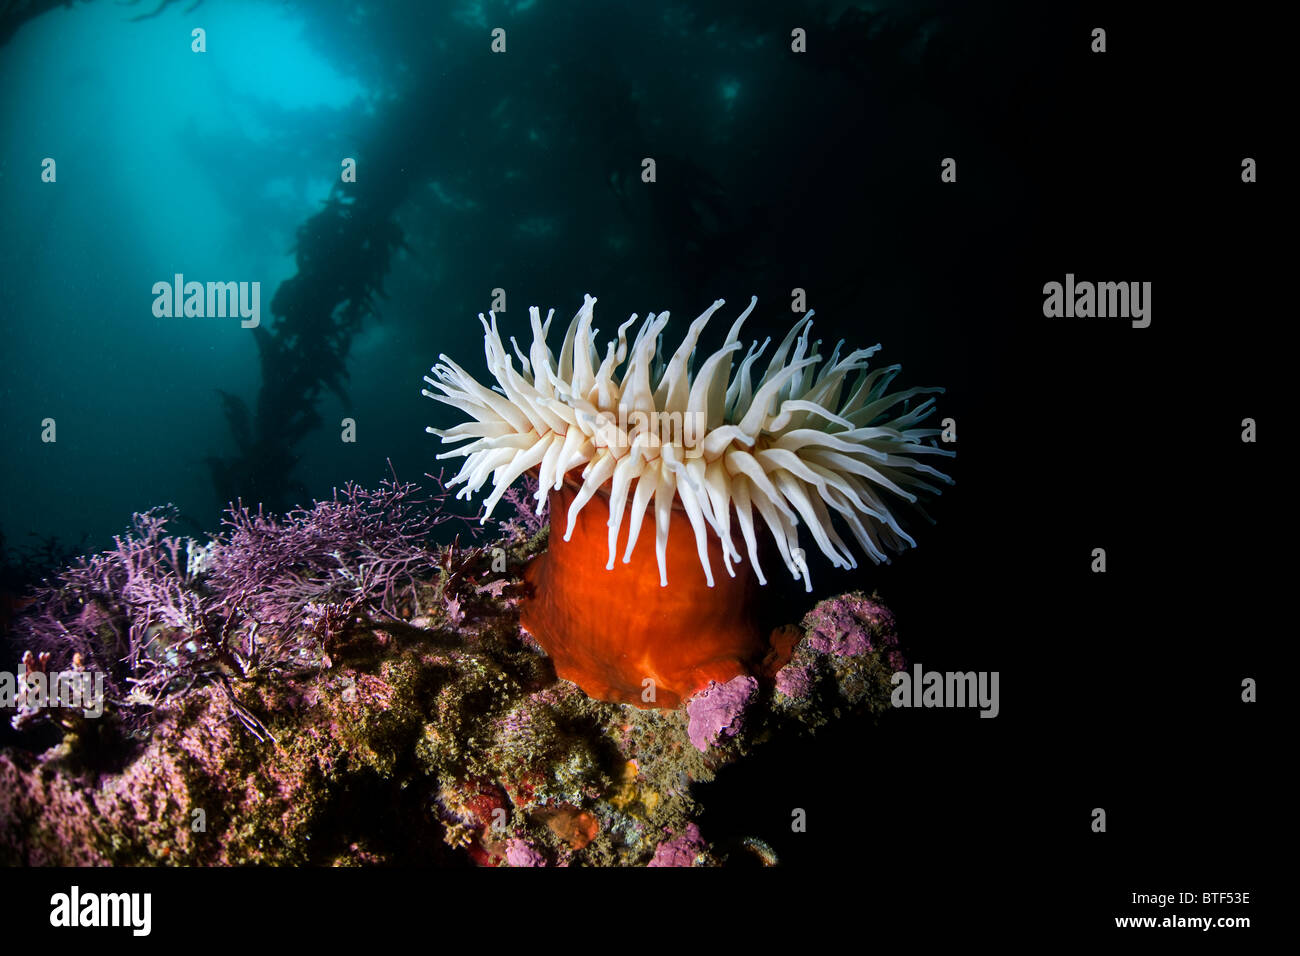 Though It Is A Carnivore An Anemone Looks Like Large Colorful Flower On